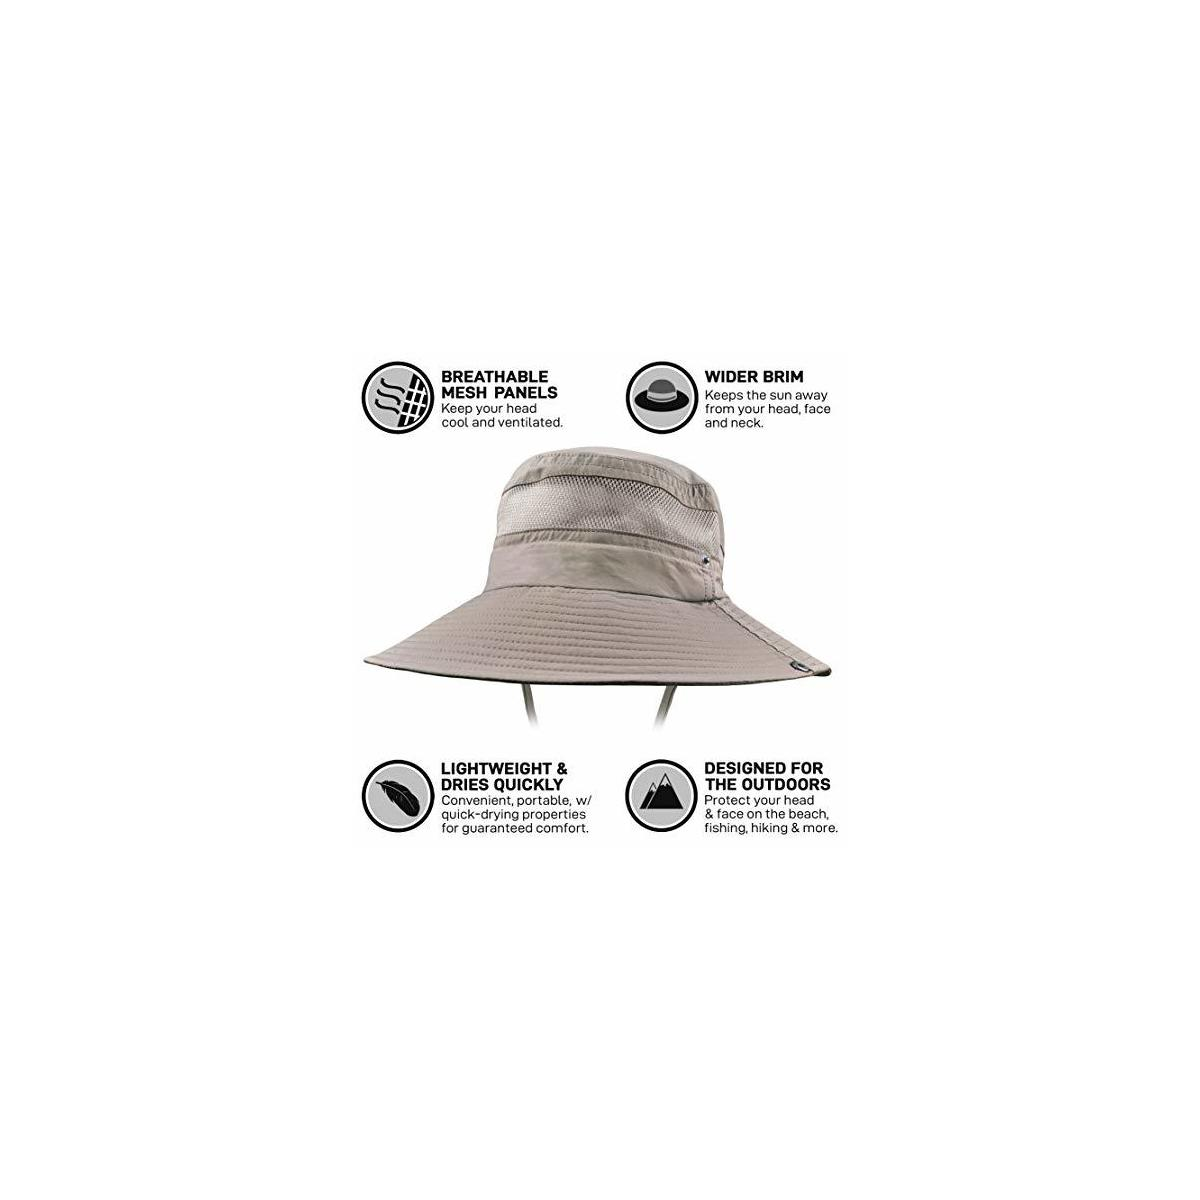 GearTOP Fishing Hat and Safari Cap with Sun Protection | Premium Hats for Men and Women (Beige, Khaki, Army Green, Black Camo Available)